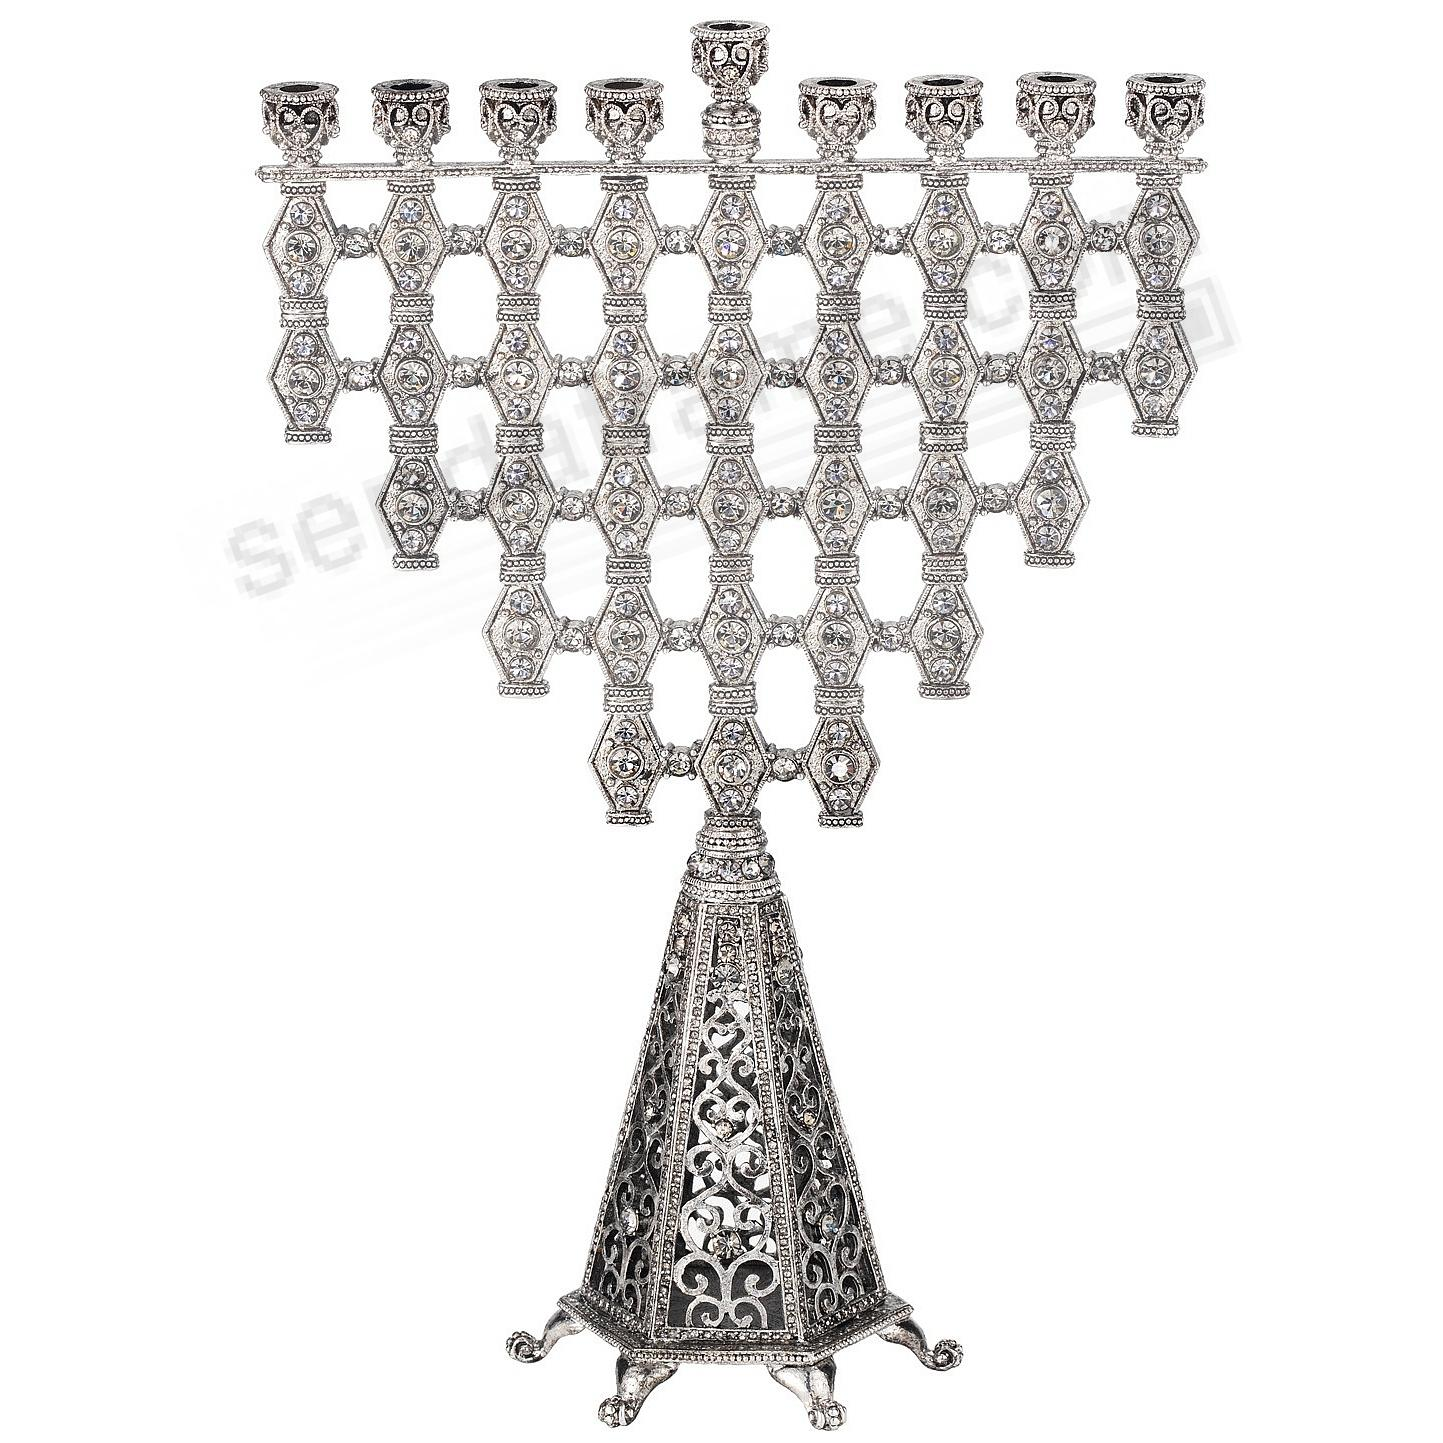 The ZIVA CRYSTAL MENORAH by Olivia Riegel®